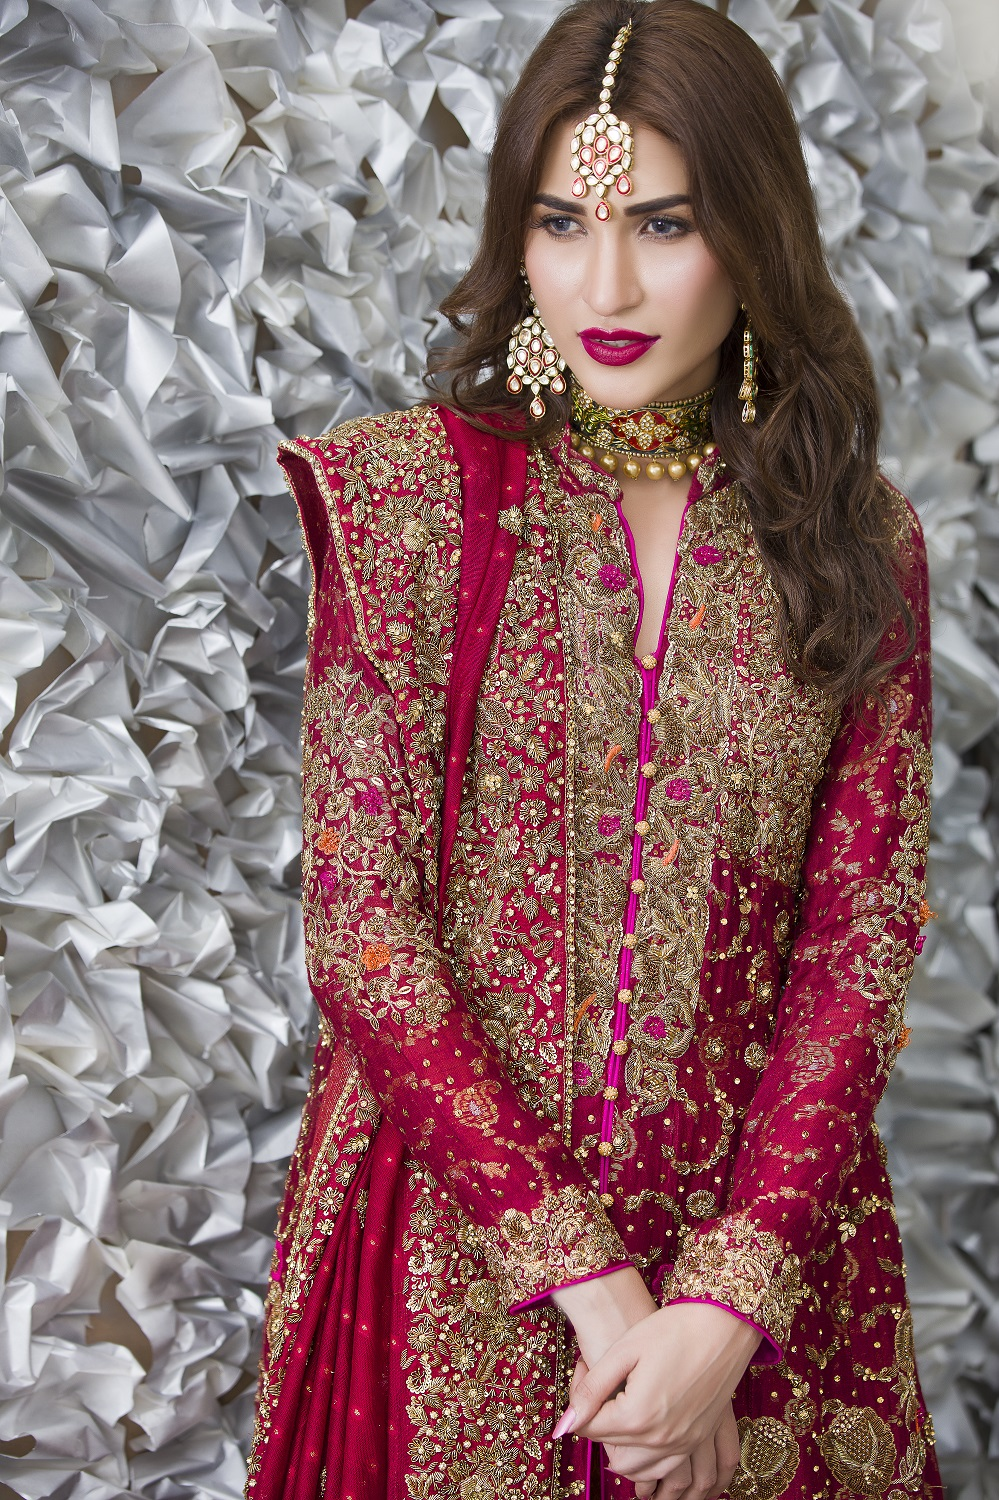 Bridal Dresses 2018 In Pakistan Raveitsafe